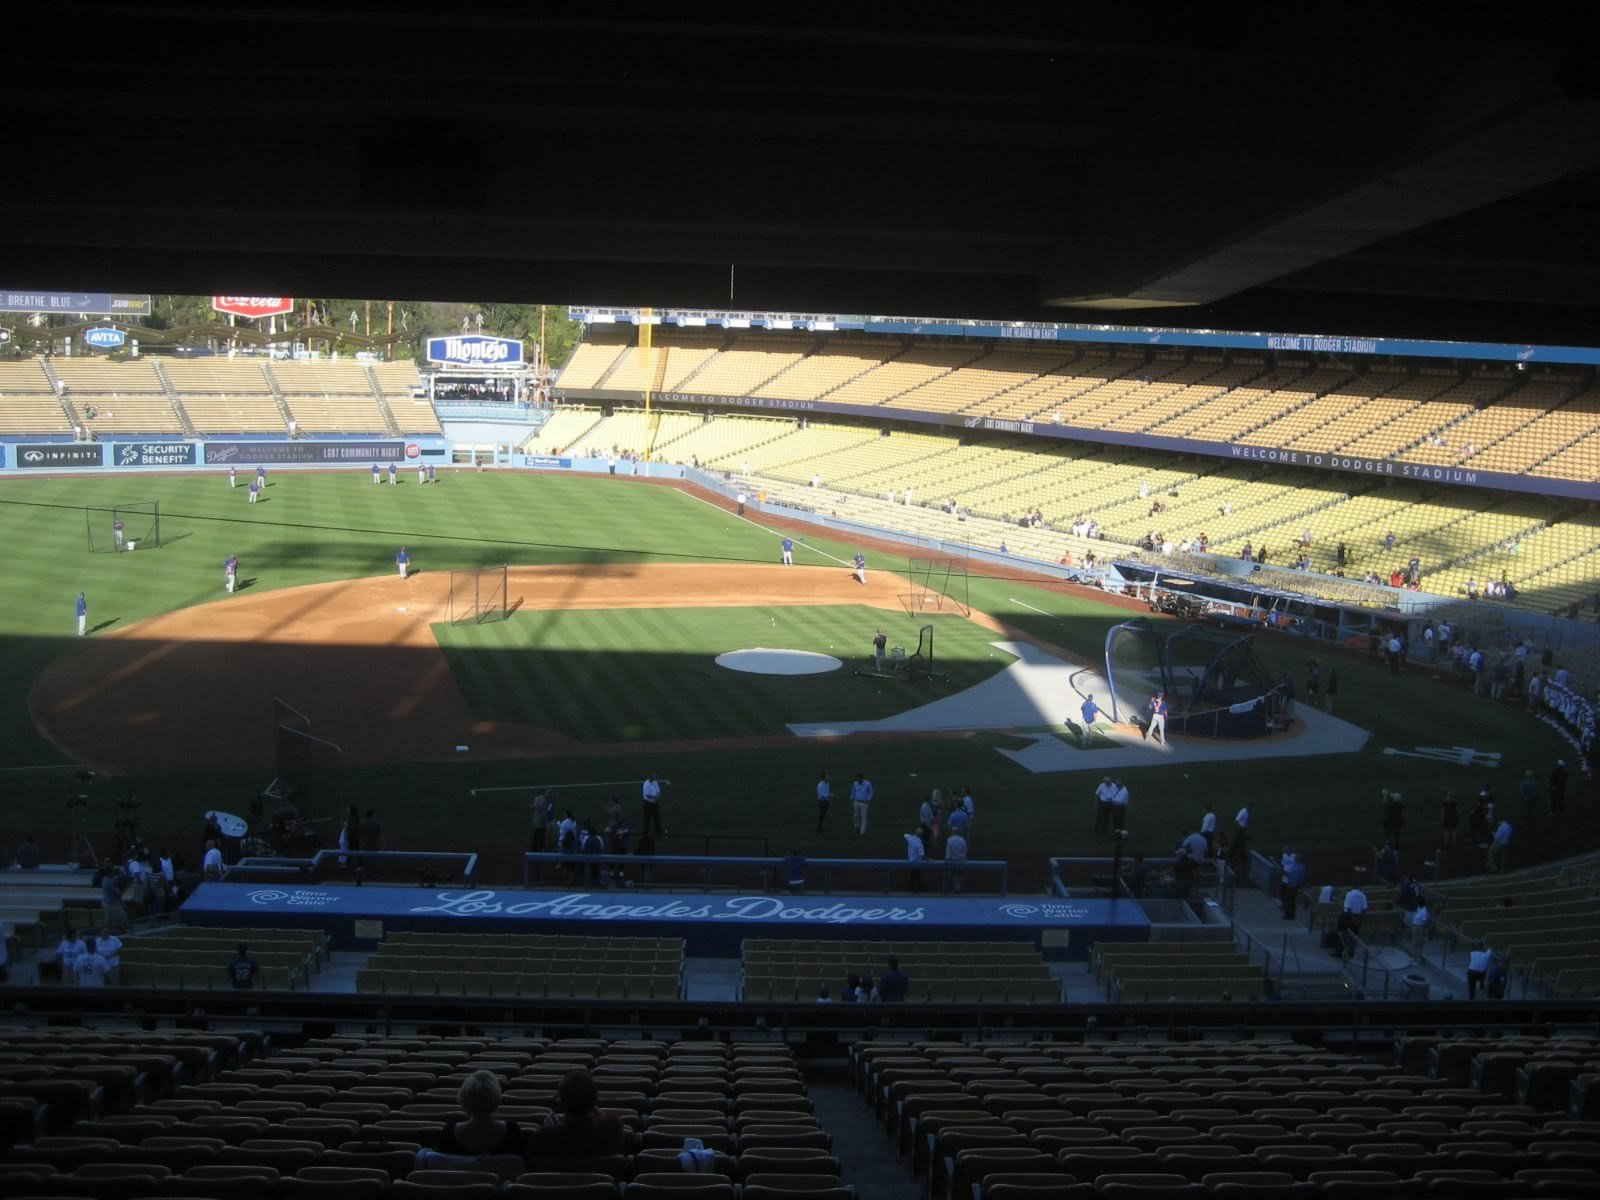 Los Angeles Dodgers Seating Guide - Dodger Stadium